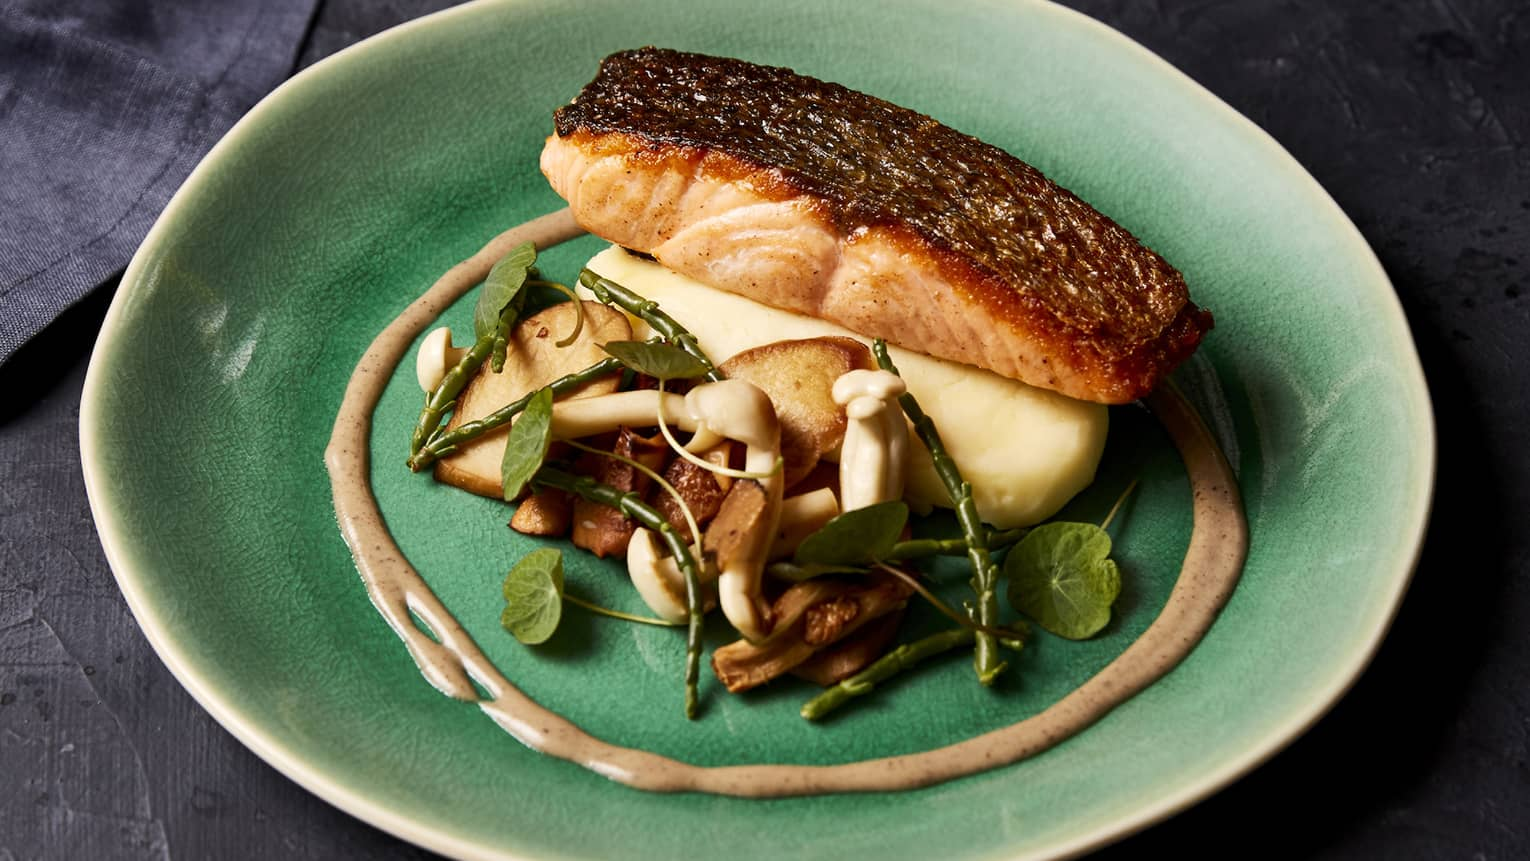 Blackened salmon with assorted mushrooms and greens on round green plate